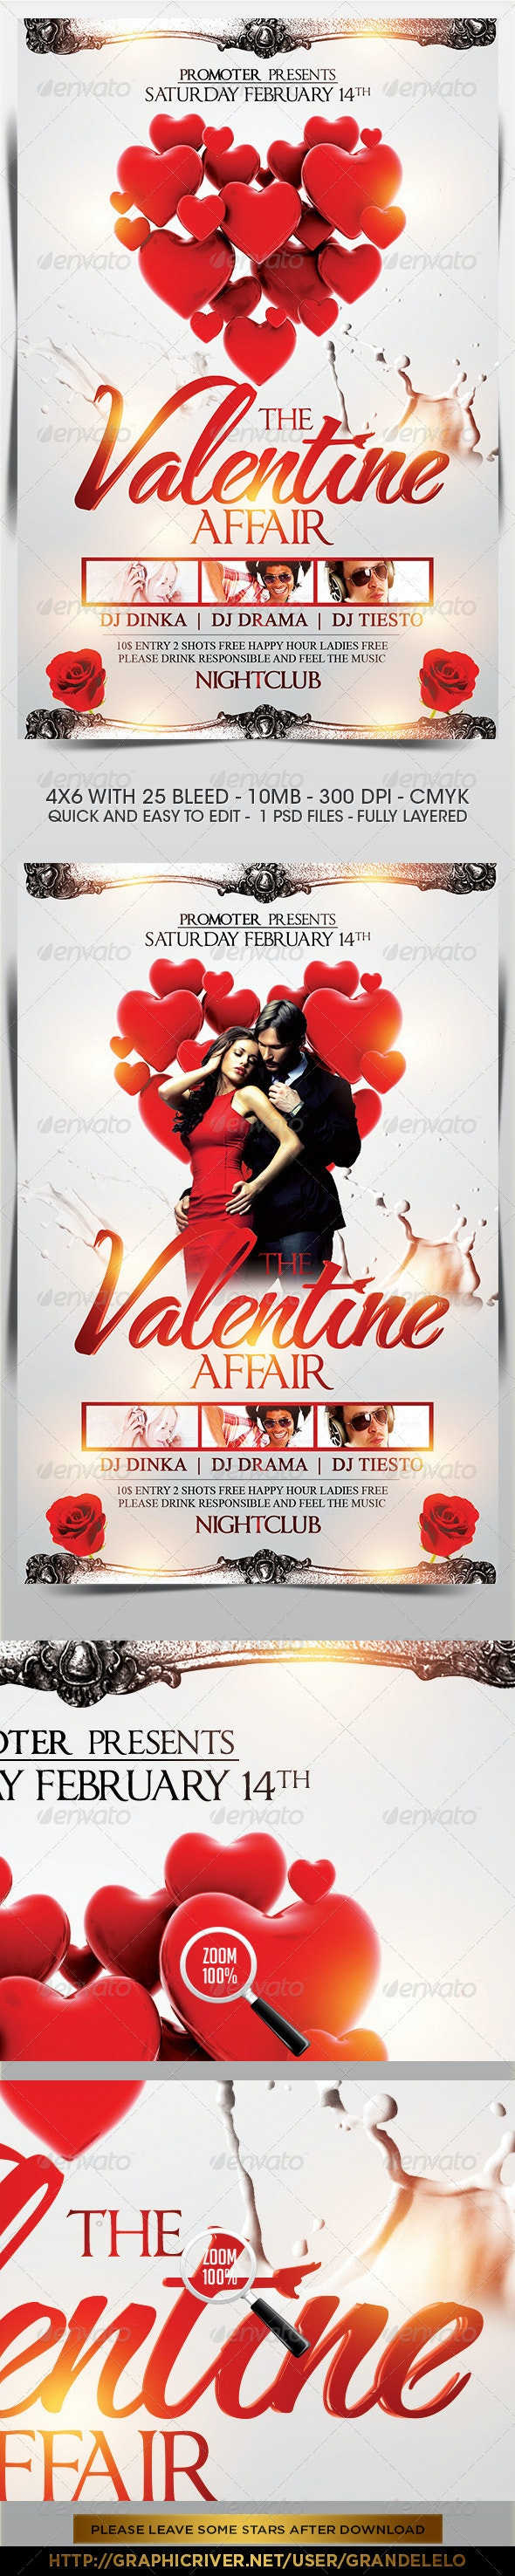 The Valentine Affair Party Flyer  - Clubs & Parties Events